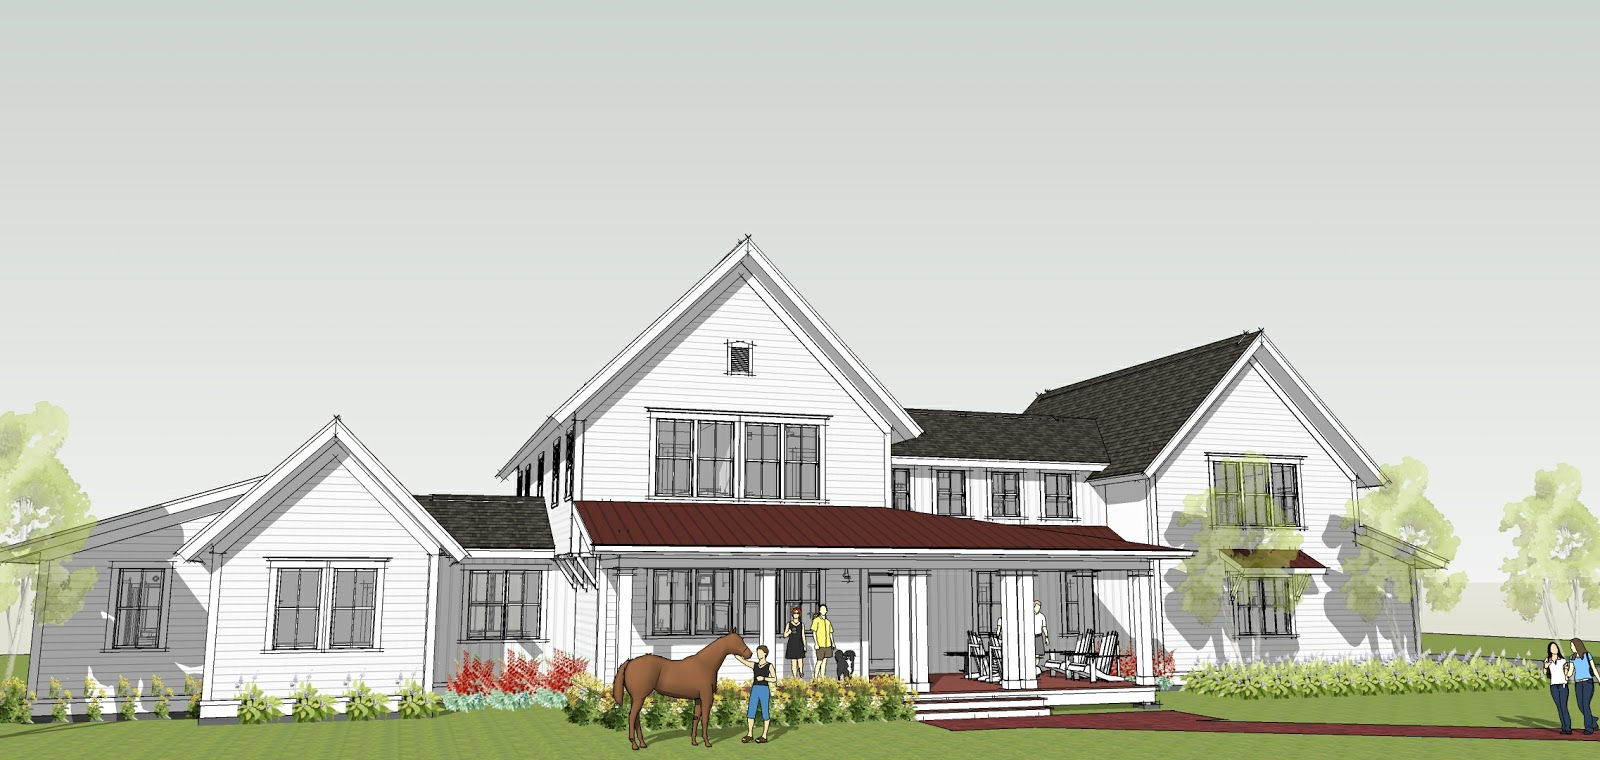 Modern farmhouse by ron brenner architects for New farmhouse plans